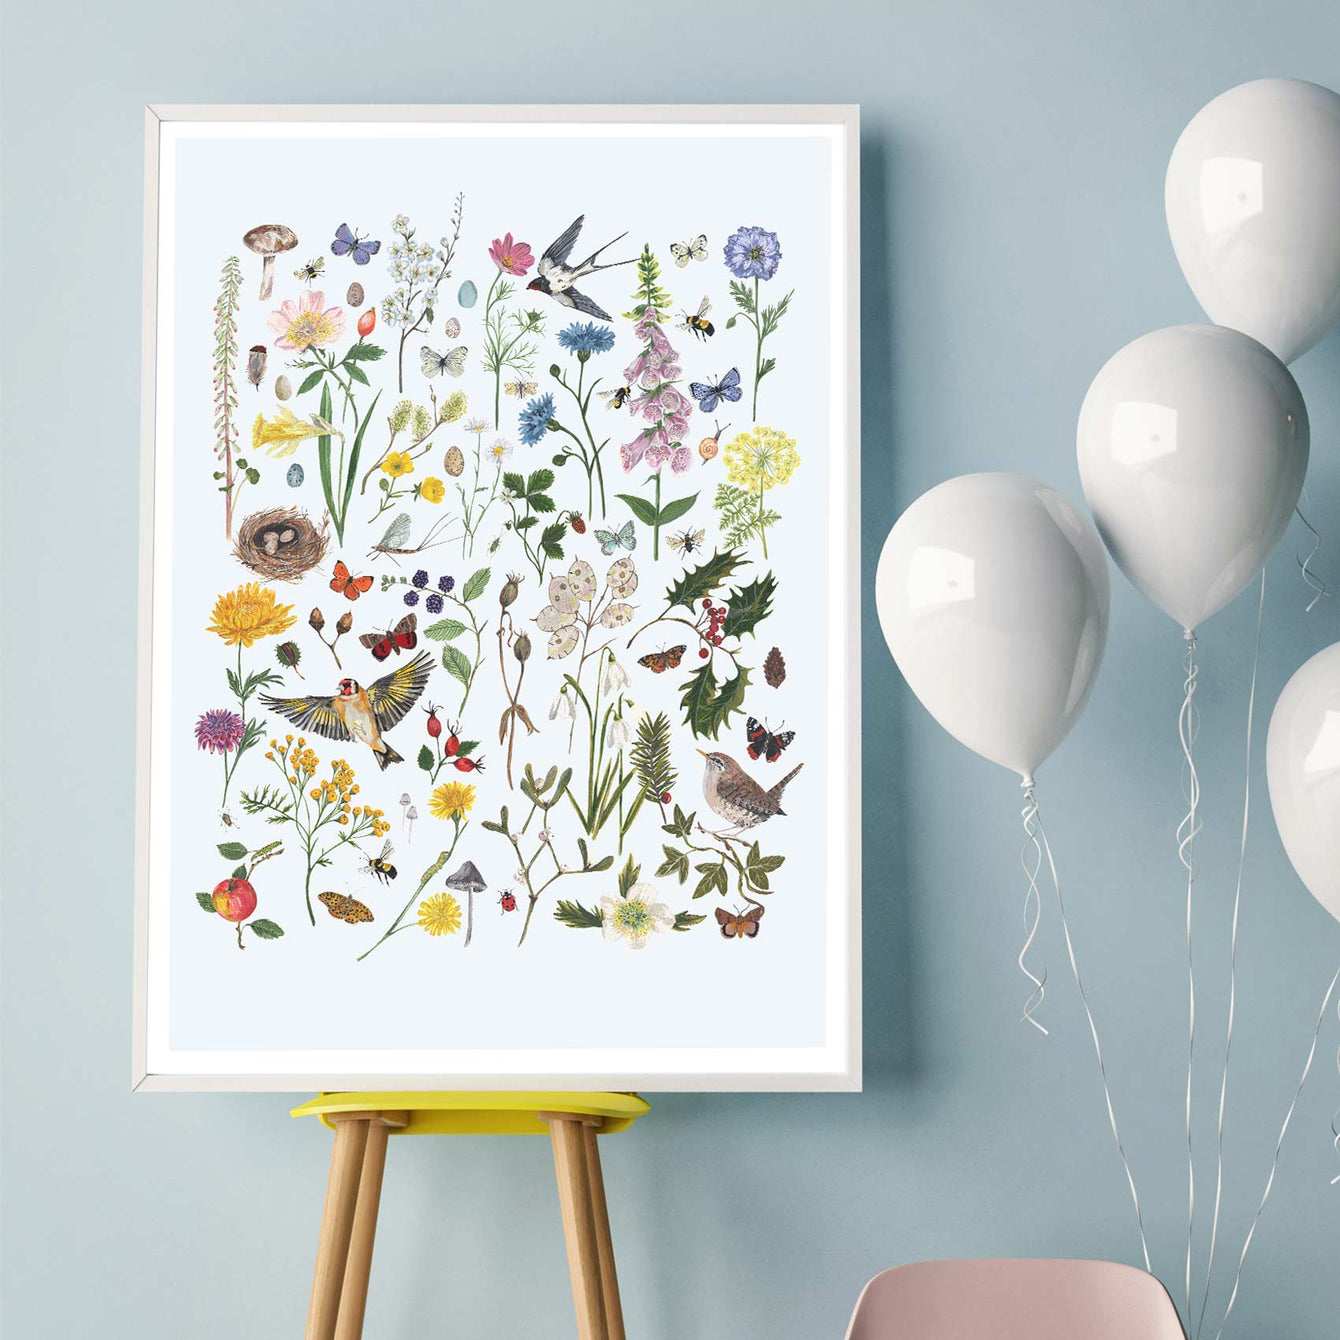 Spring, Summer, Autumn, Winter - Archival digital giclee print - Light grey